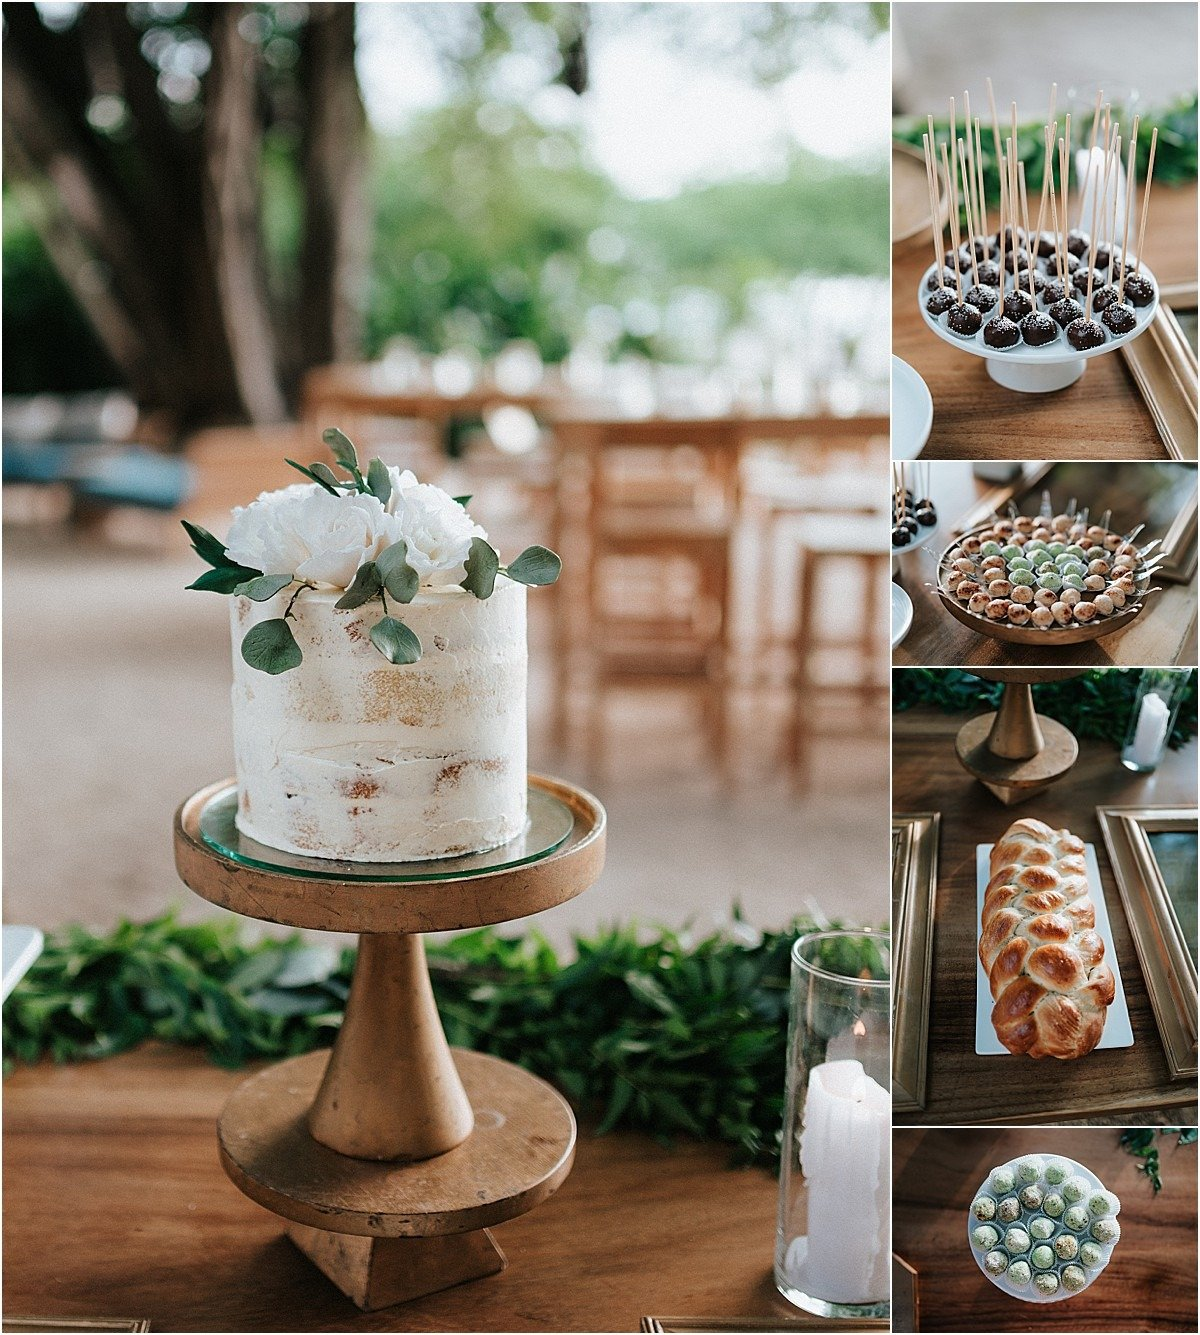 naked cake and sweet table